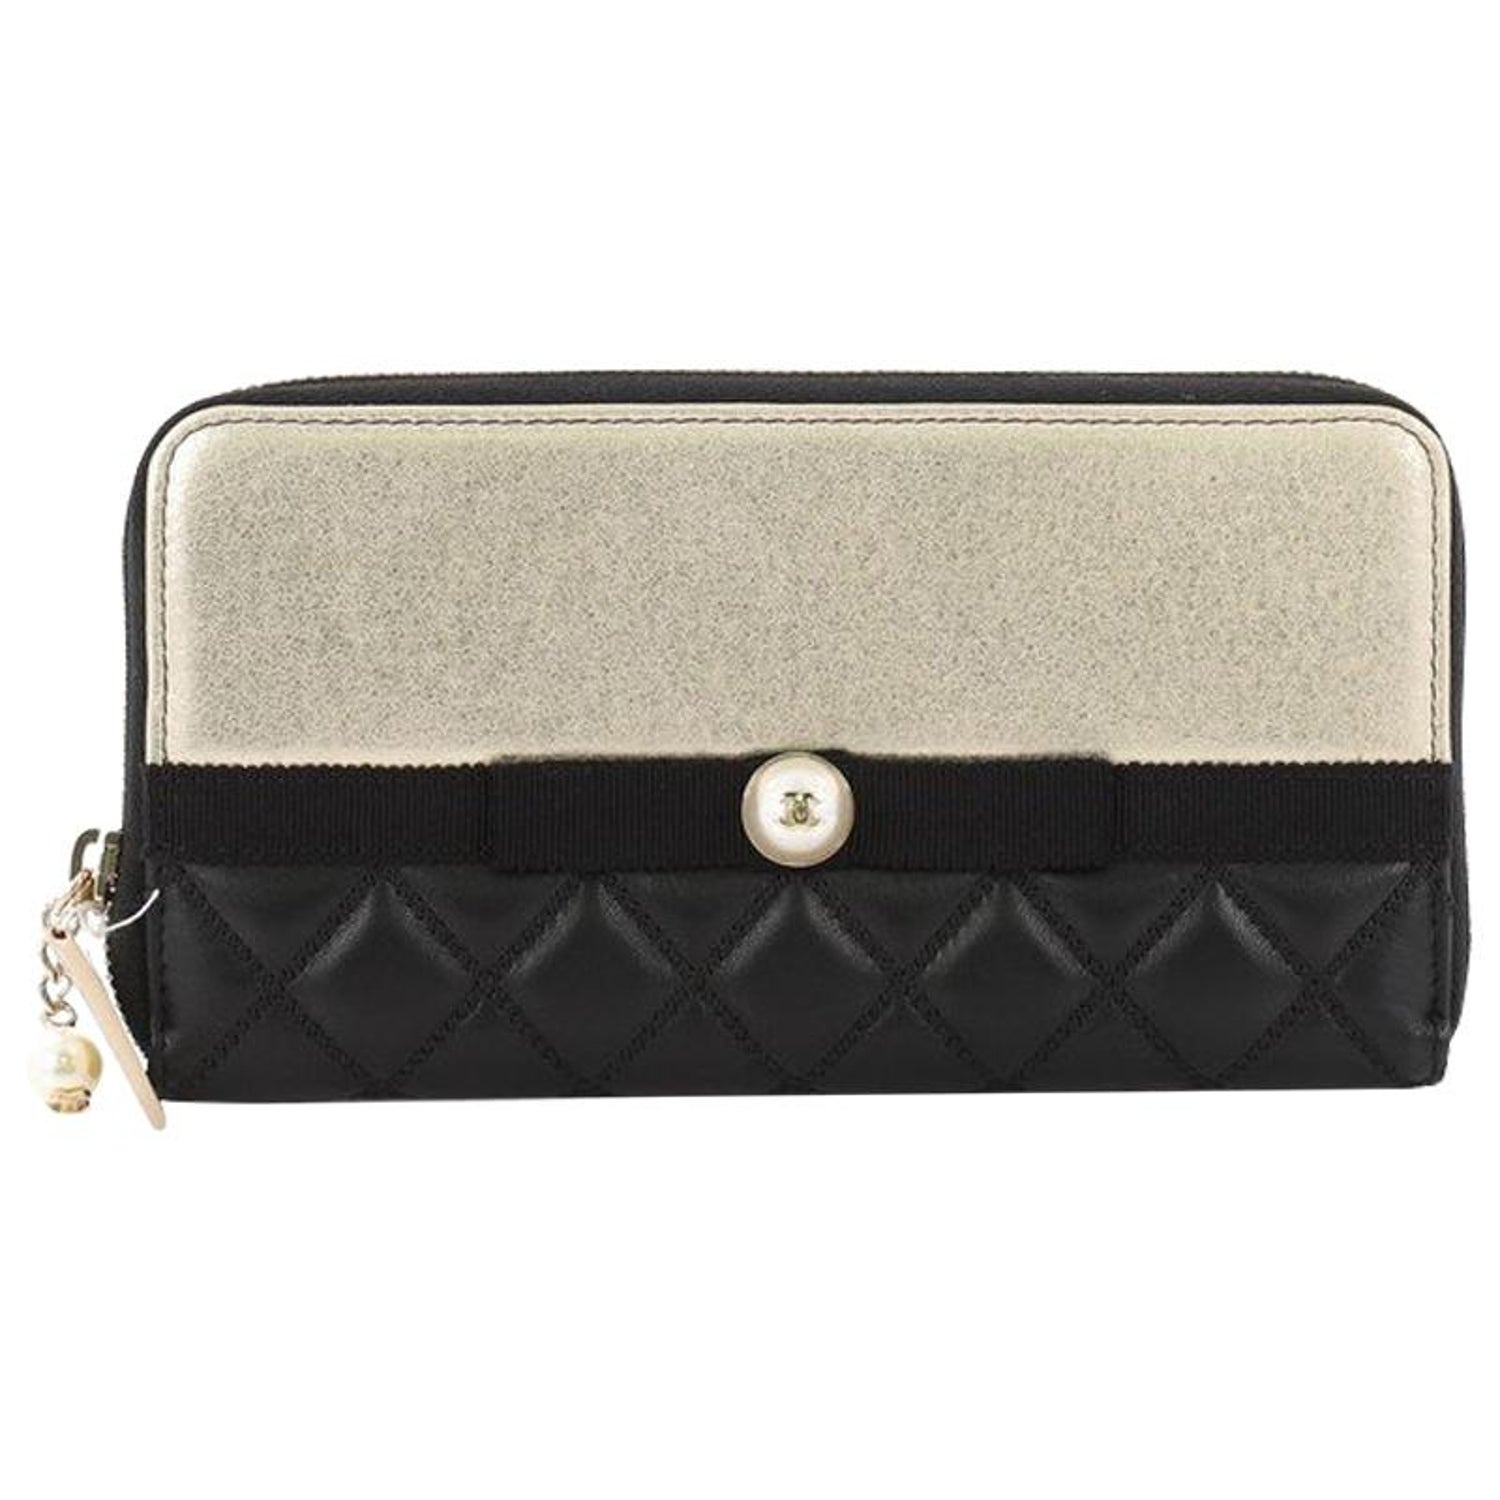 7e2345e31dc4 Chanel Quilted Lambskin Zipped Wallet - Best Quilt Grafimage.co